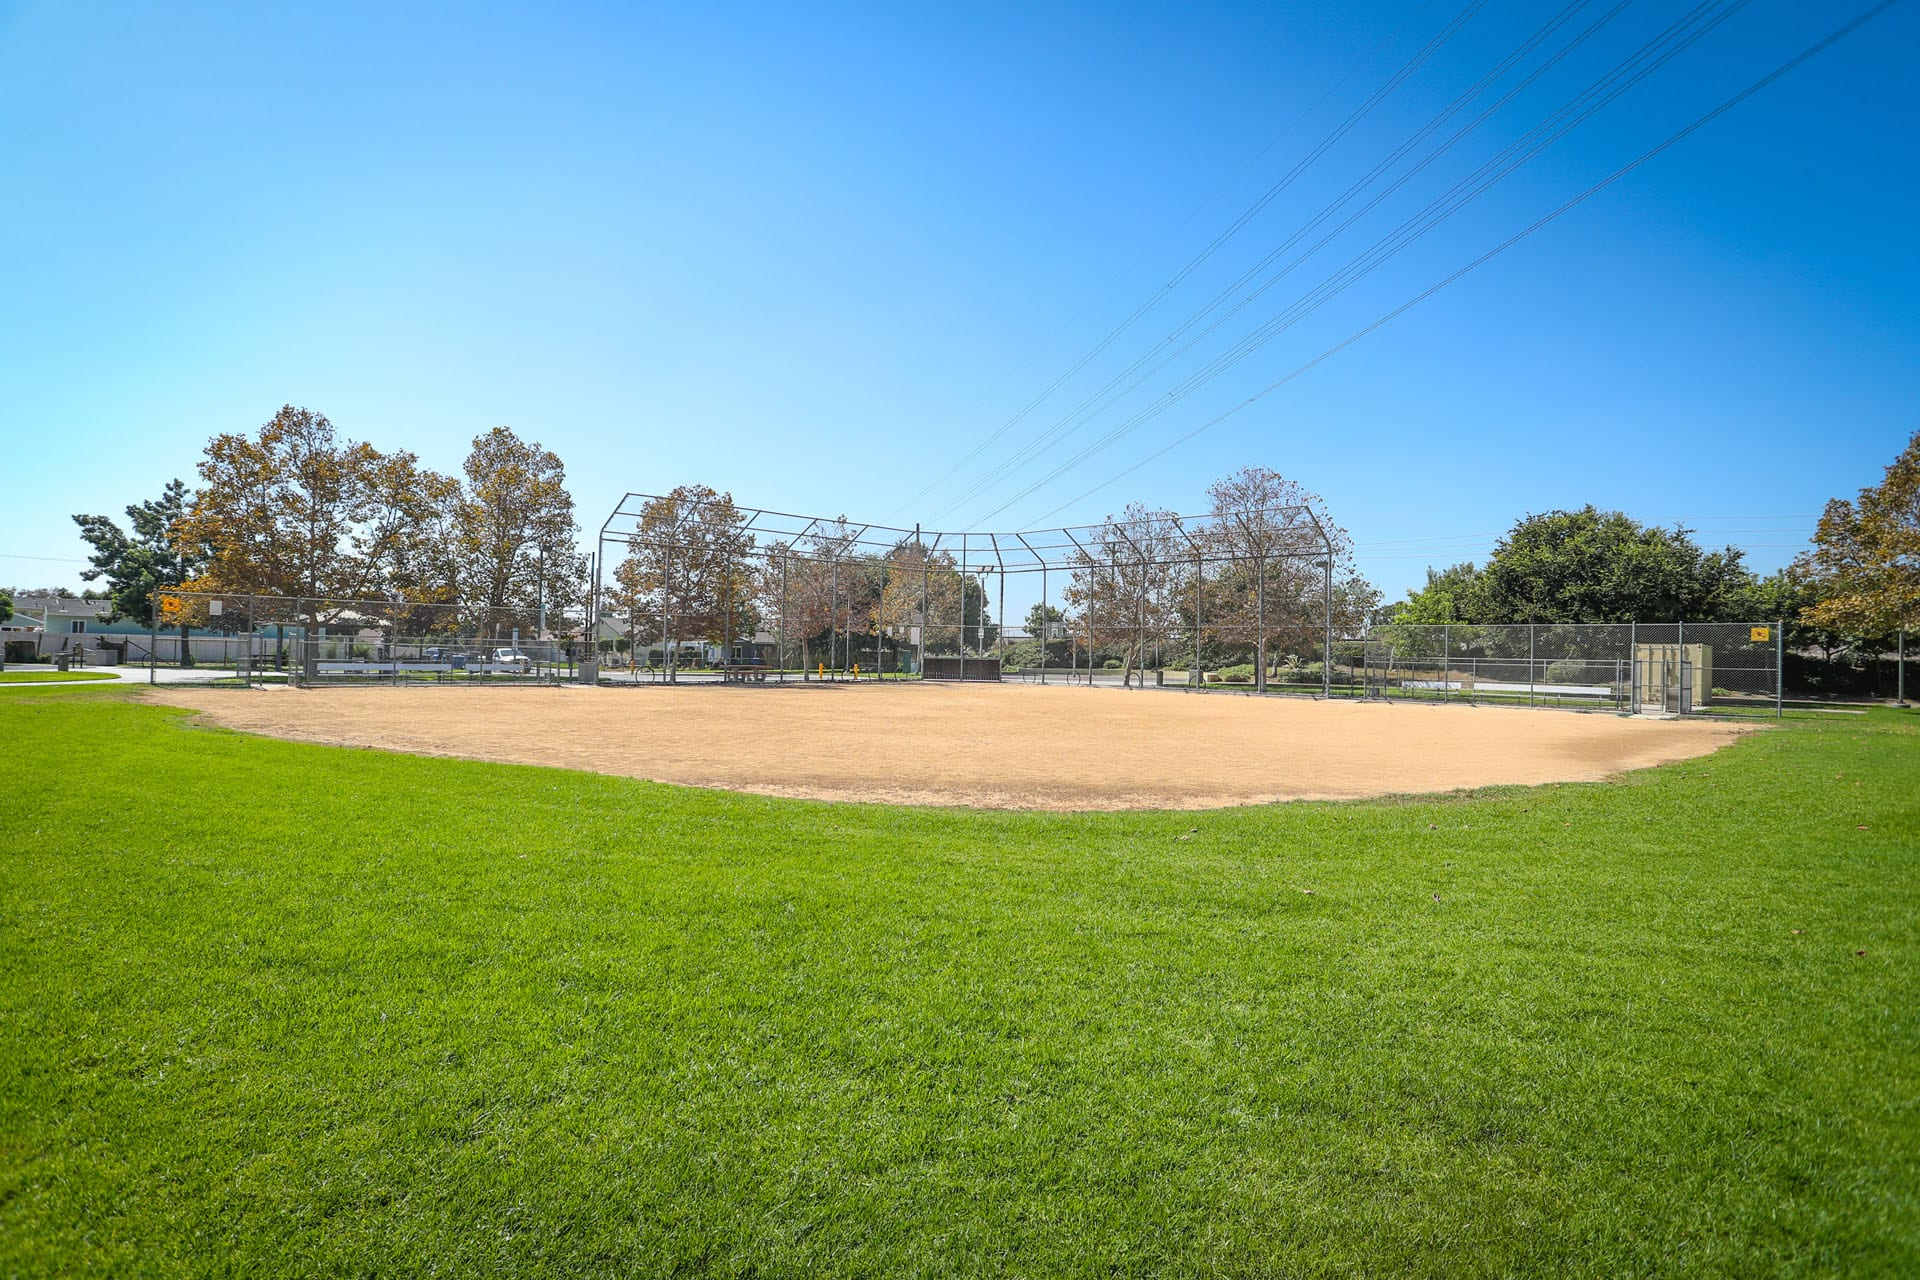 Baseball diamond and net